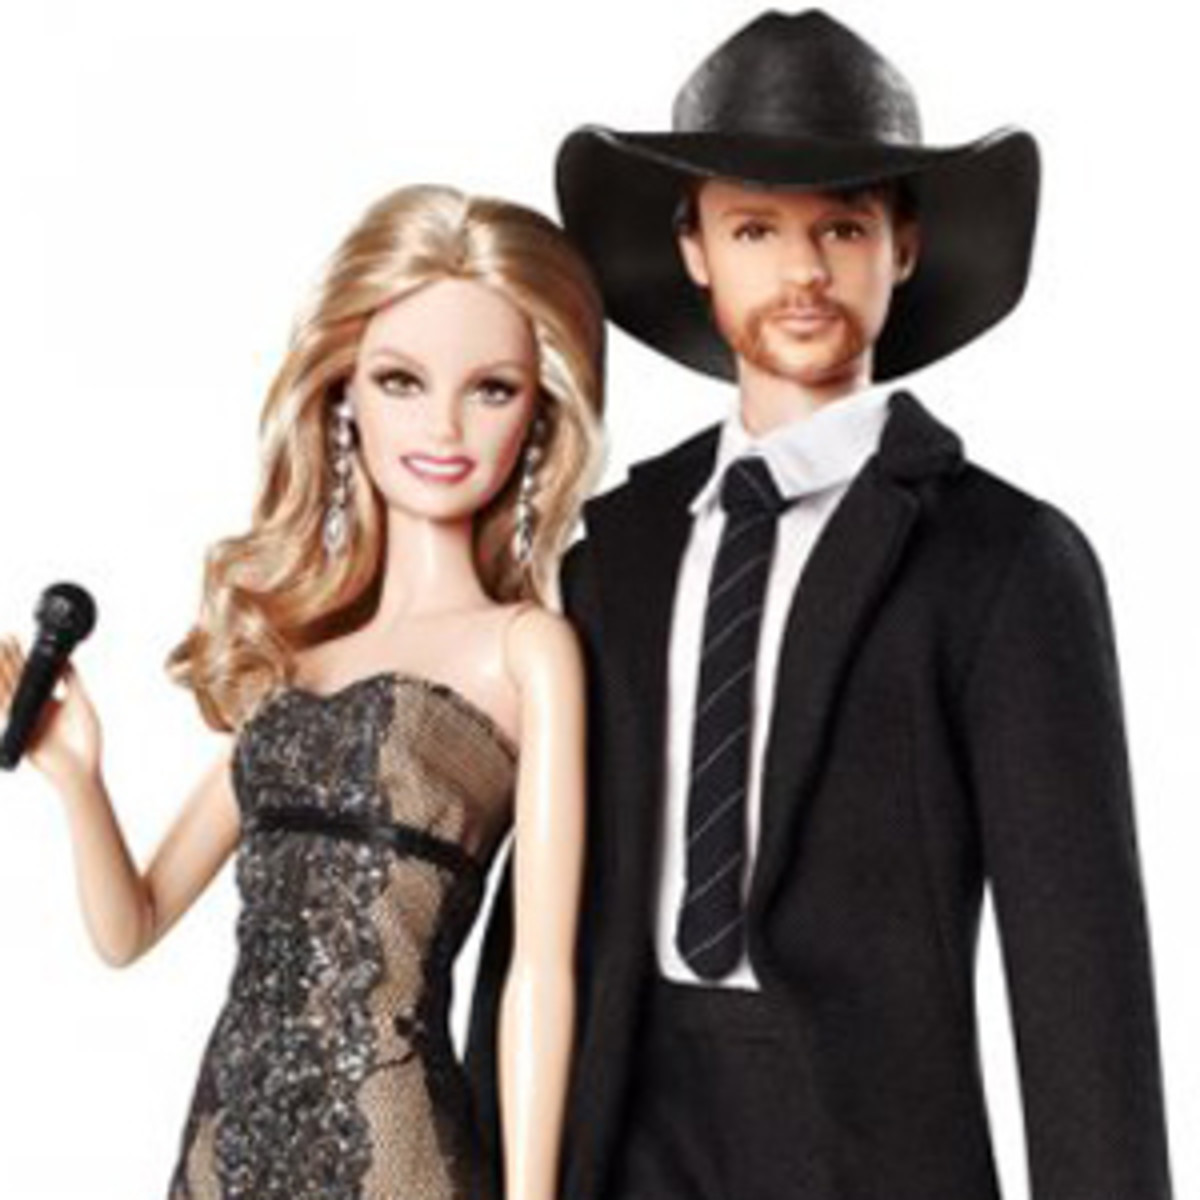 tim-mcgraw-faith-hill-barbie-dolls-by-mattel